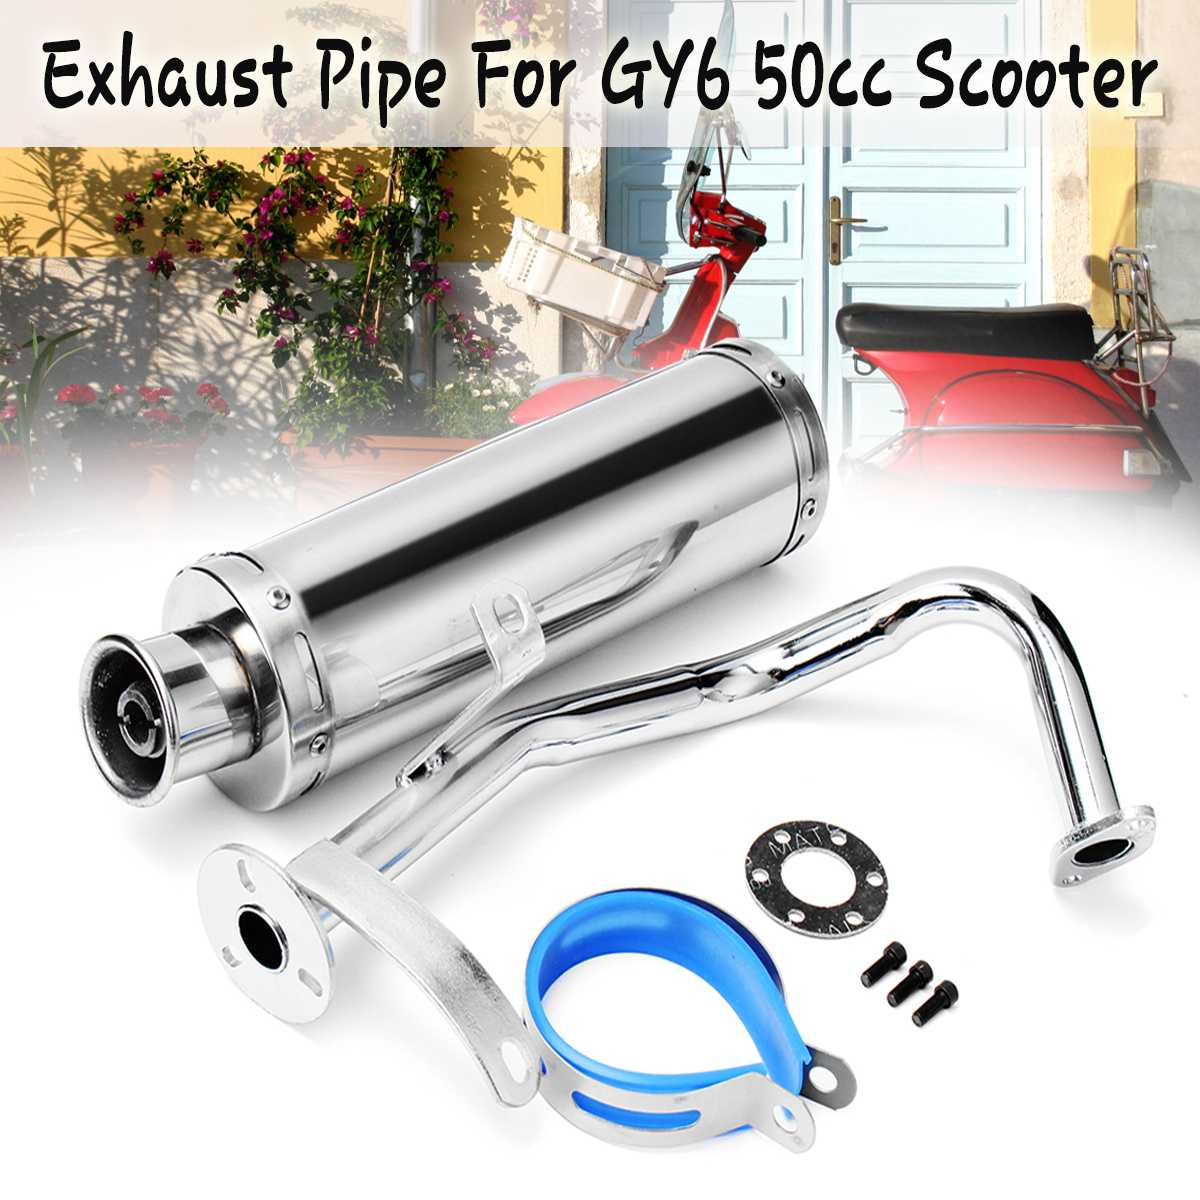 Stainless Steel Exhaust Muffler Pipe System Gasket Kit Fit For Scooter GY6 50cc GY6 QM139 Exhaust PipeStainless Steel Exhaust Muffler Pipe System Gasket Kit Fit For Scooter GY6 50cc GY6 QM139 Exhaust Pipe